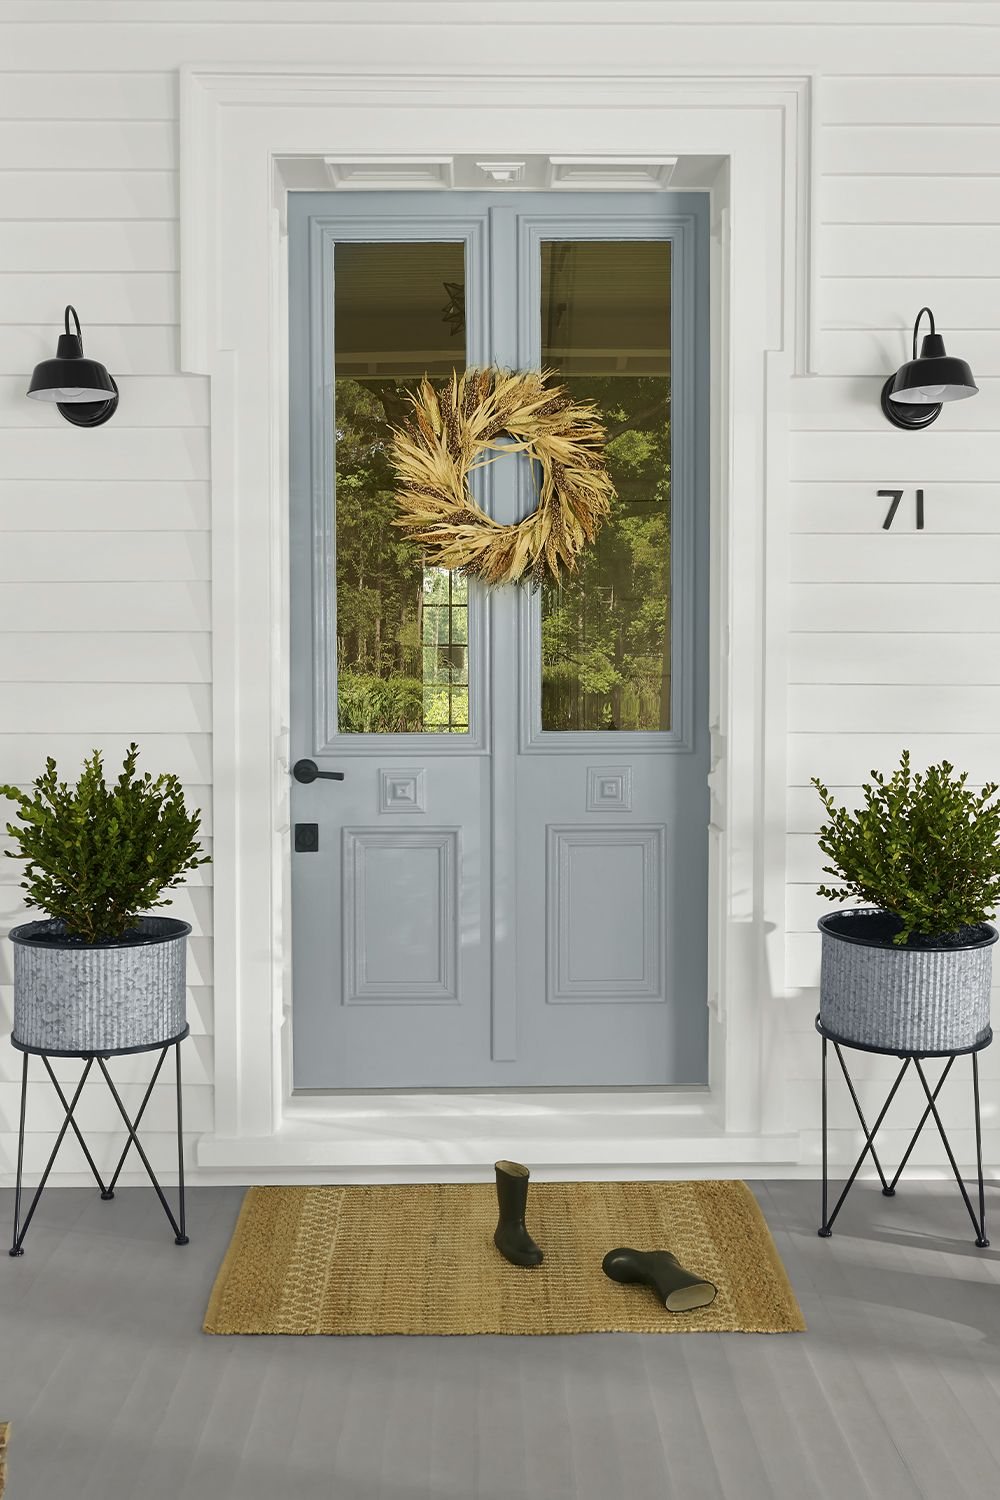 Easy ways to add curb appeal House exterior, Front porch